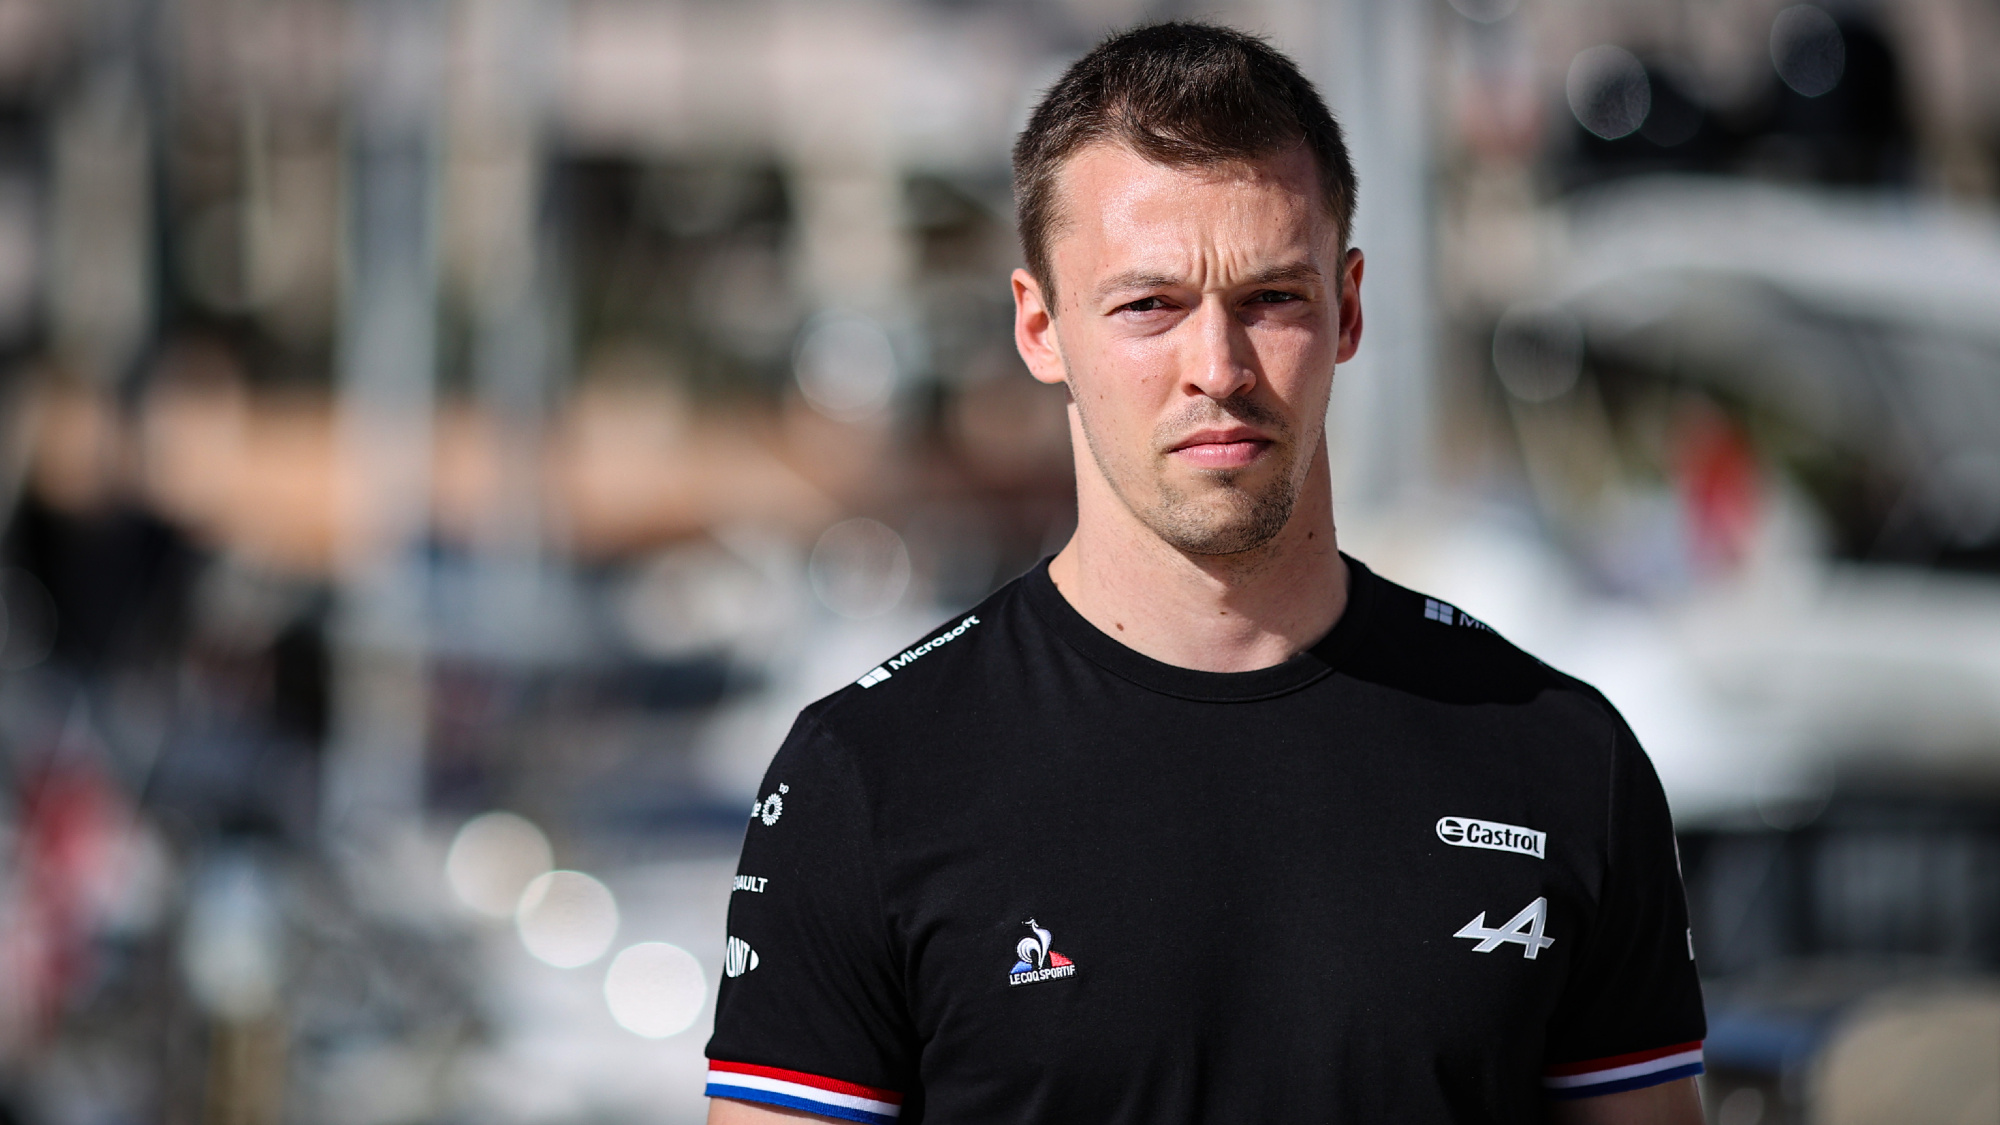 Daniil Kvyat switches to Alpine F1 Team as team's reserve driver